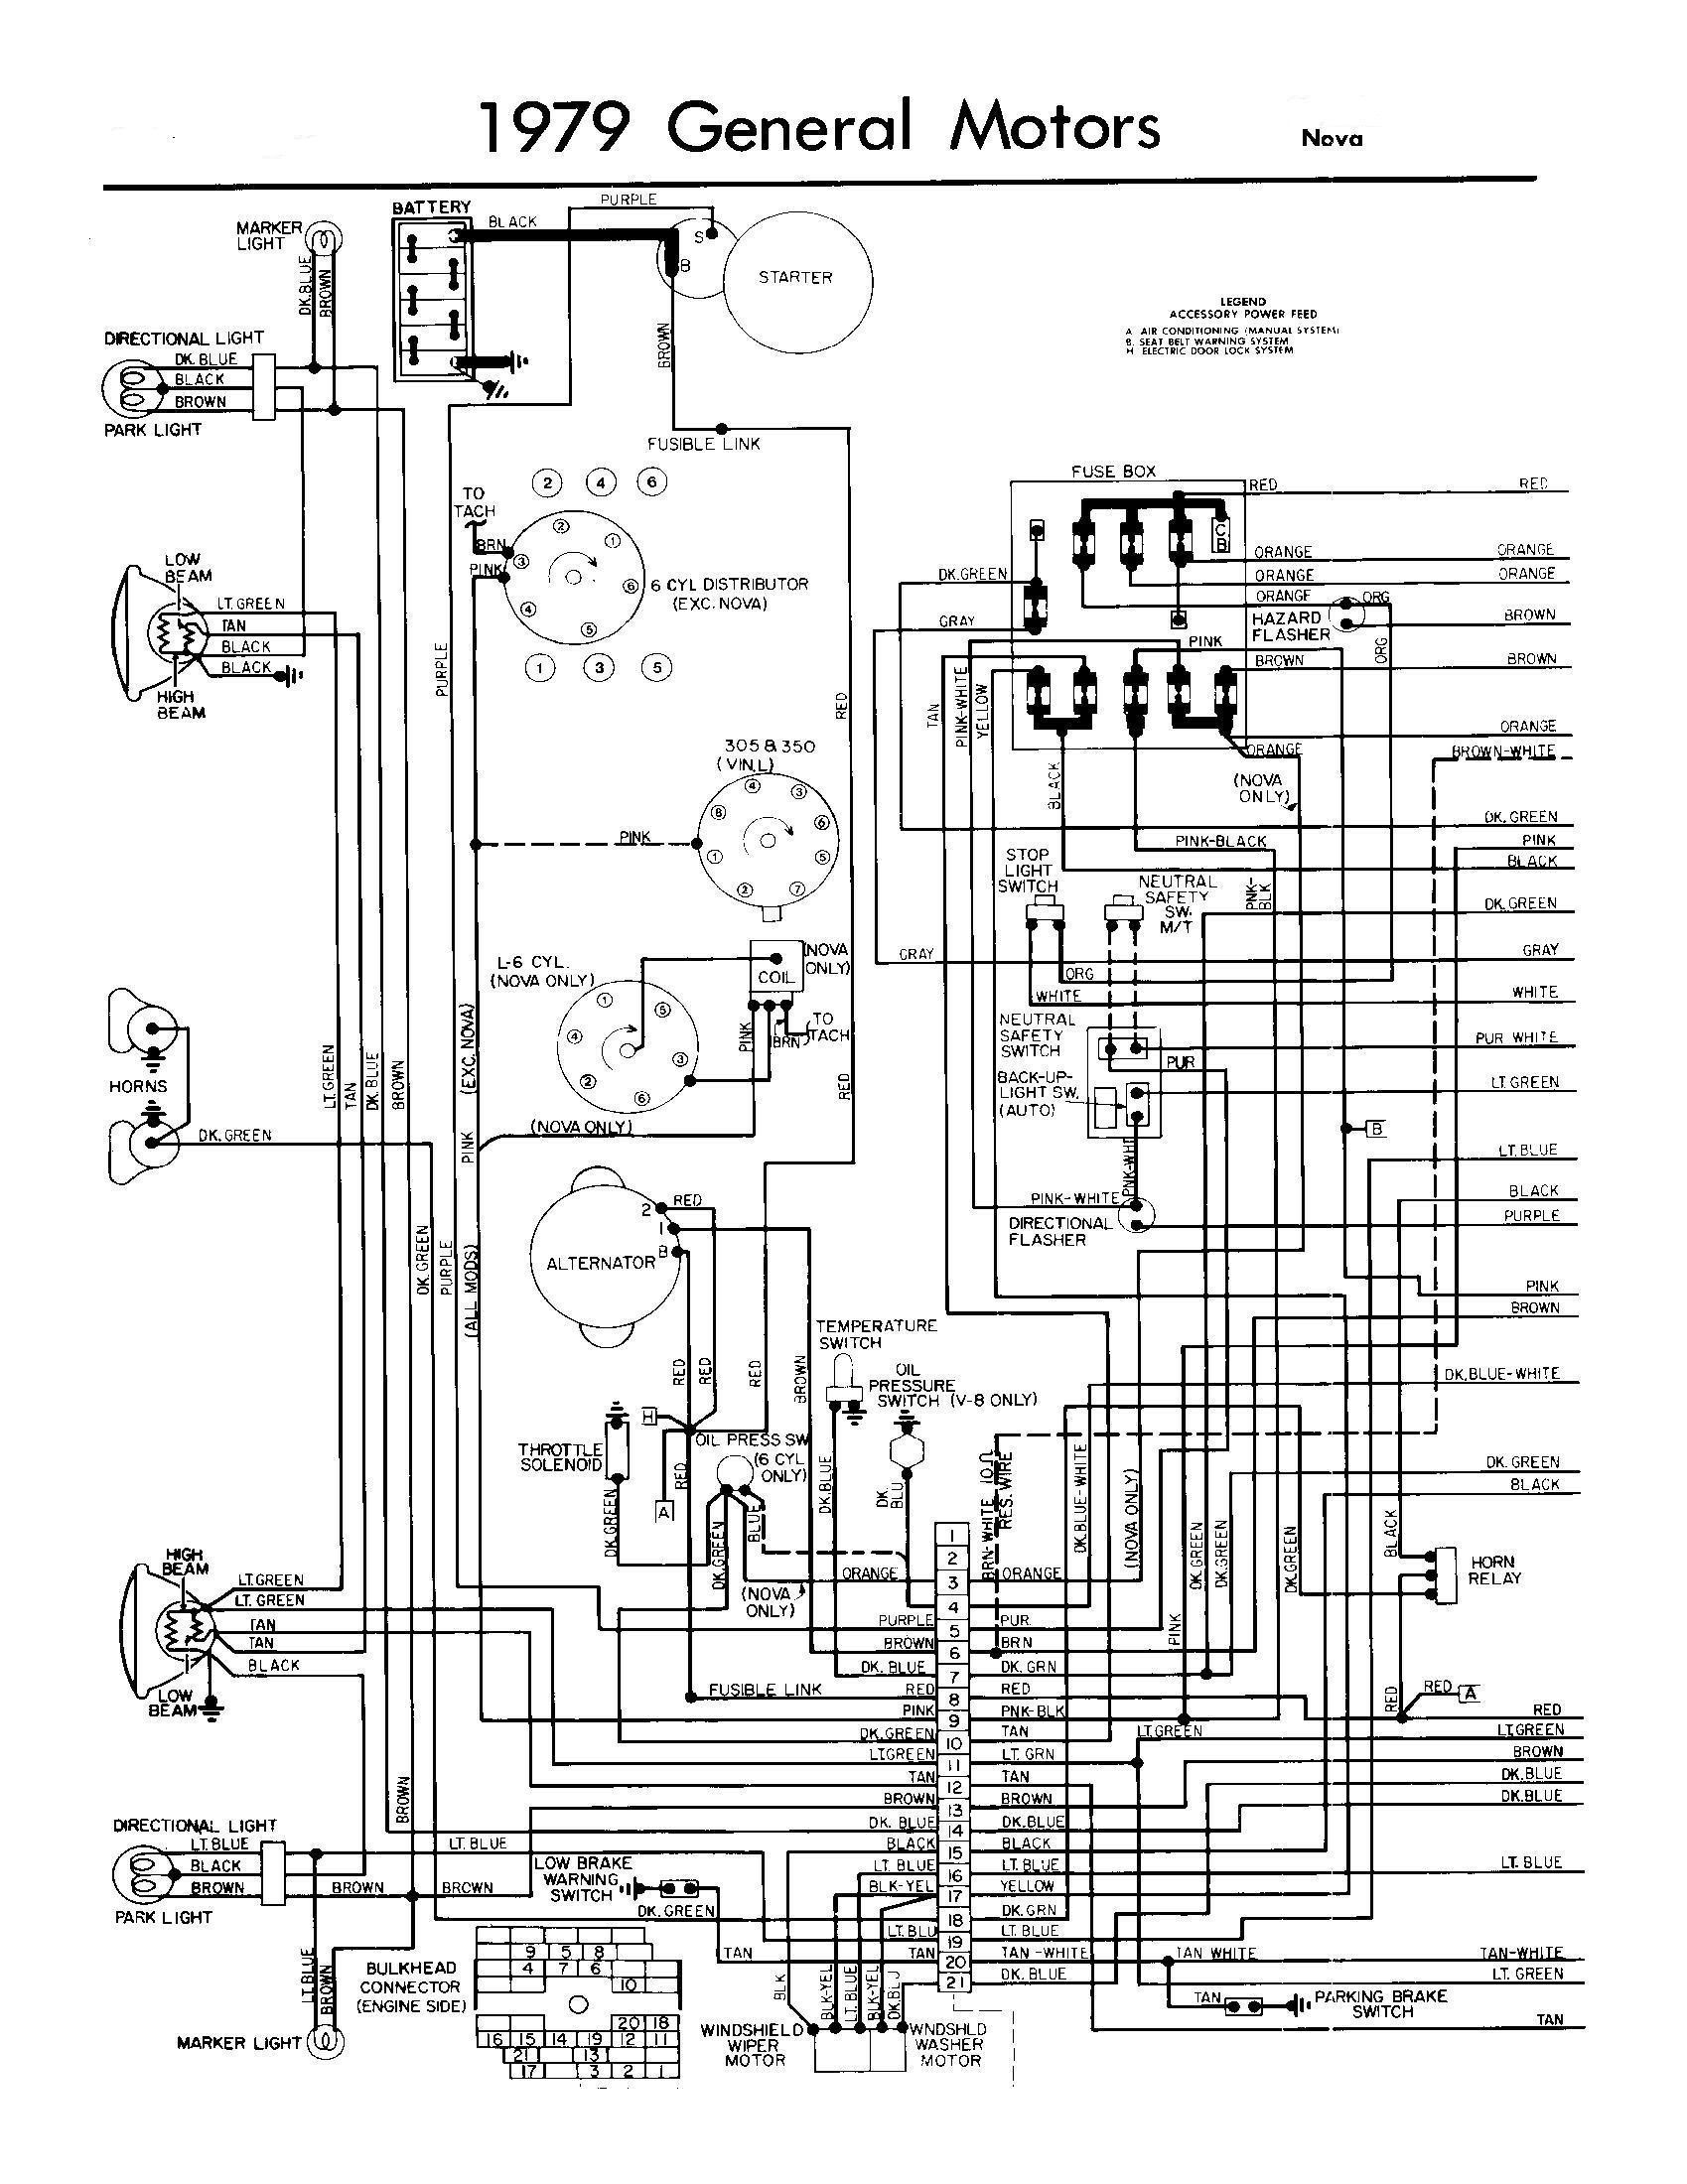 Chevy Silverado Wiring Diagram All Generation Wiring Schematics Chevy Nova forum Of Chevy Silverado Wiring Diagram